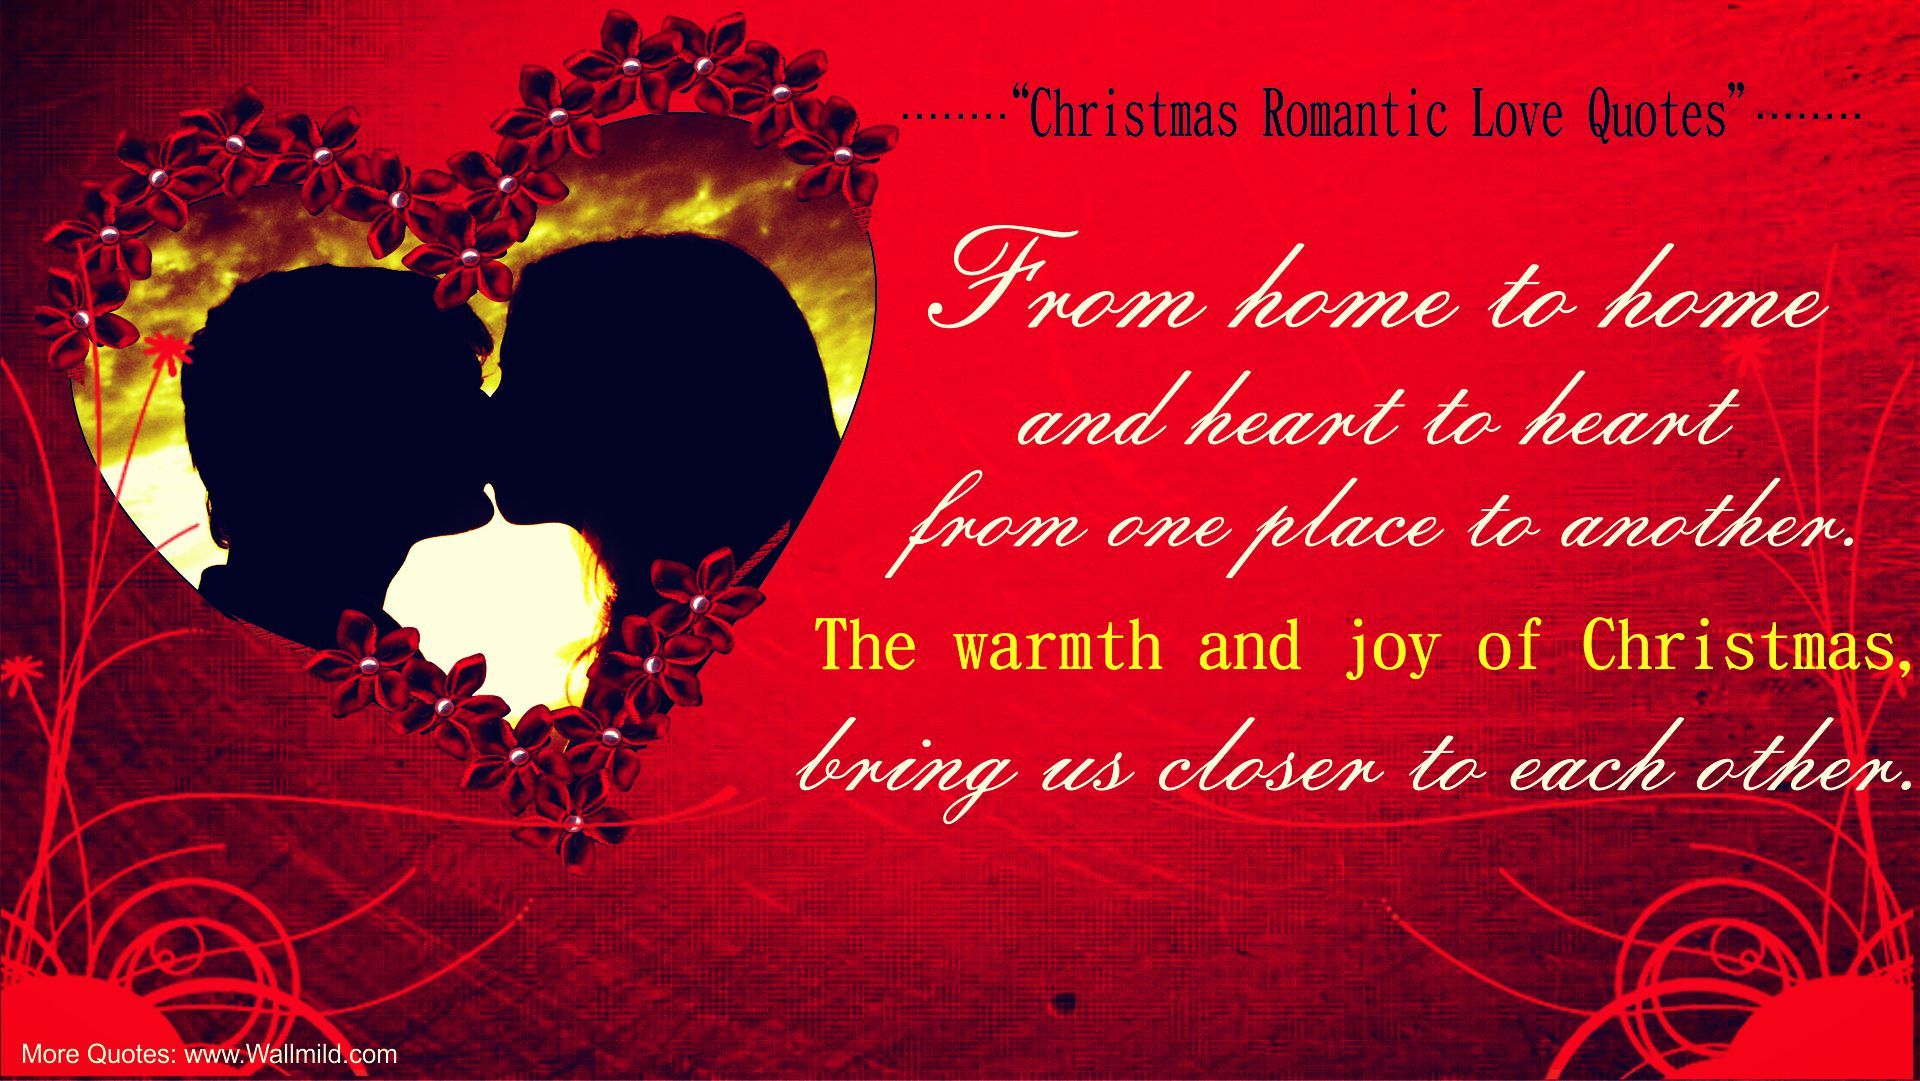 The Christmas Love Quotes Can Be Used To Wish Your Loved Ones During